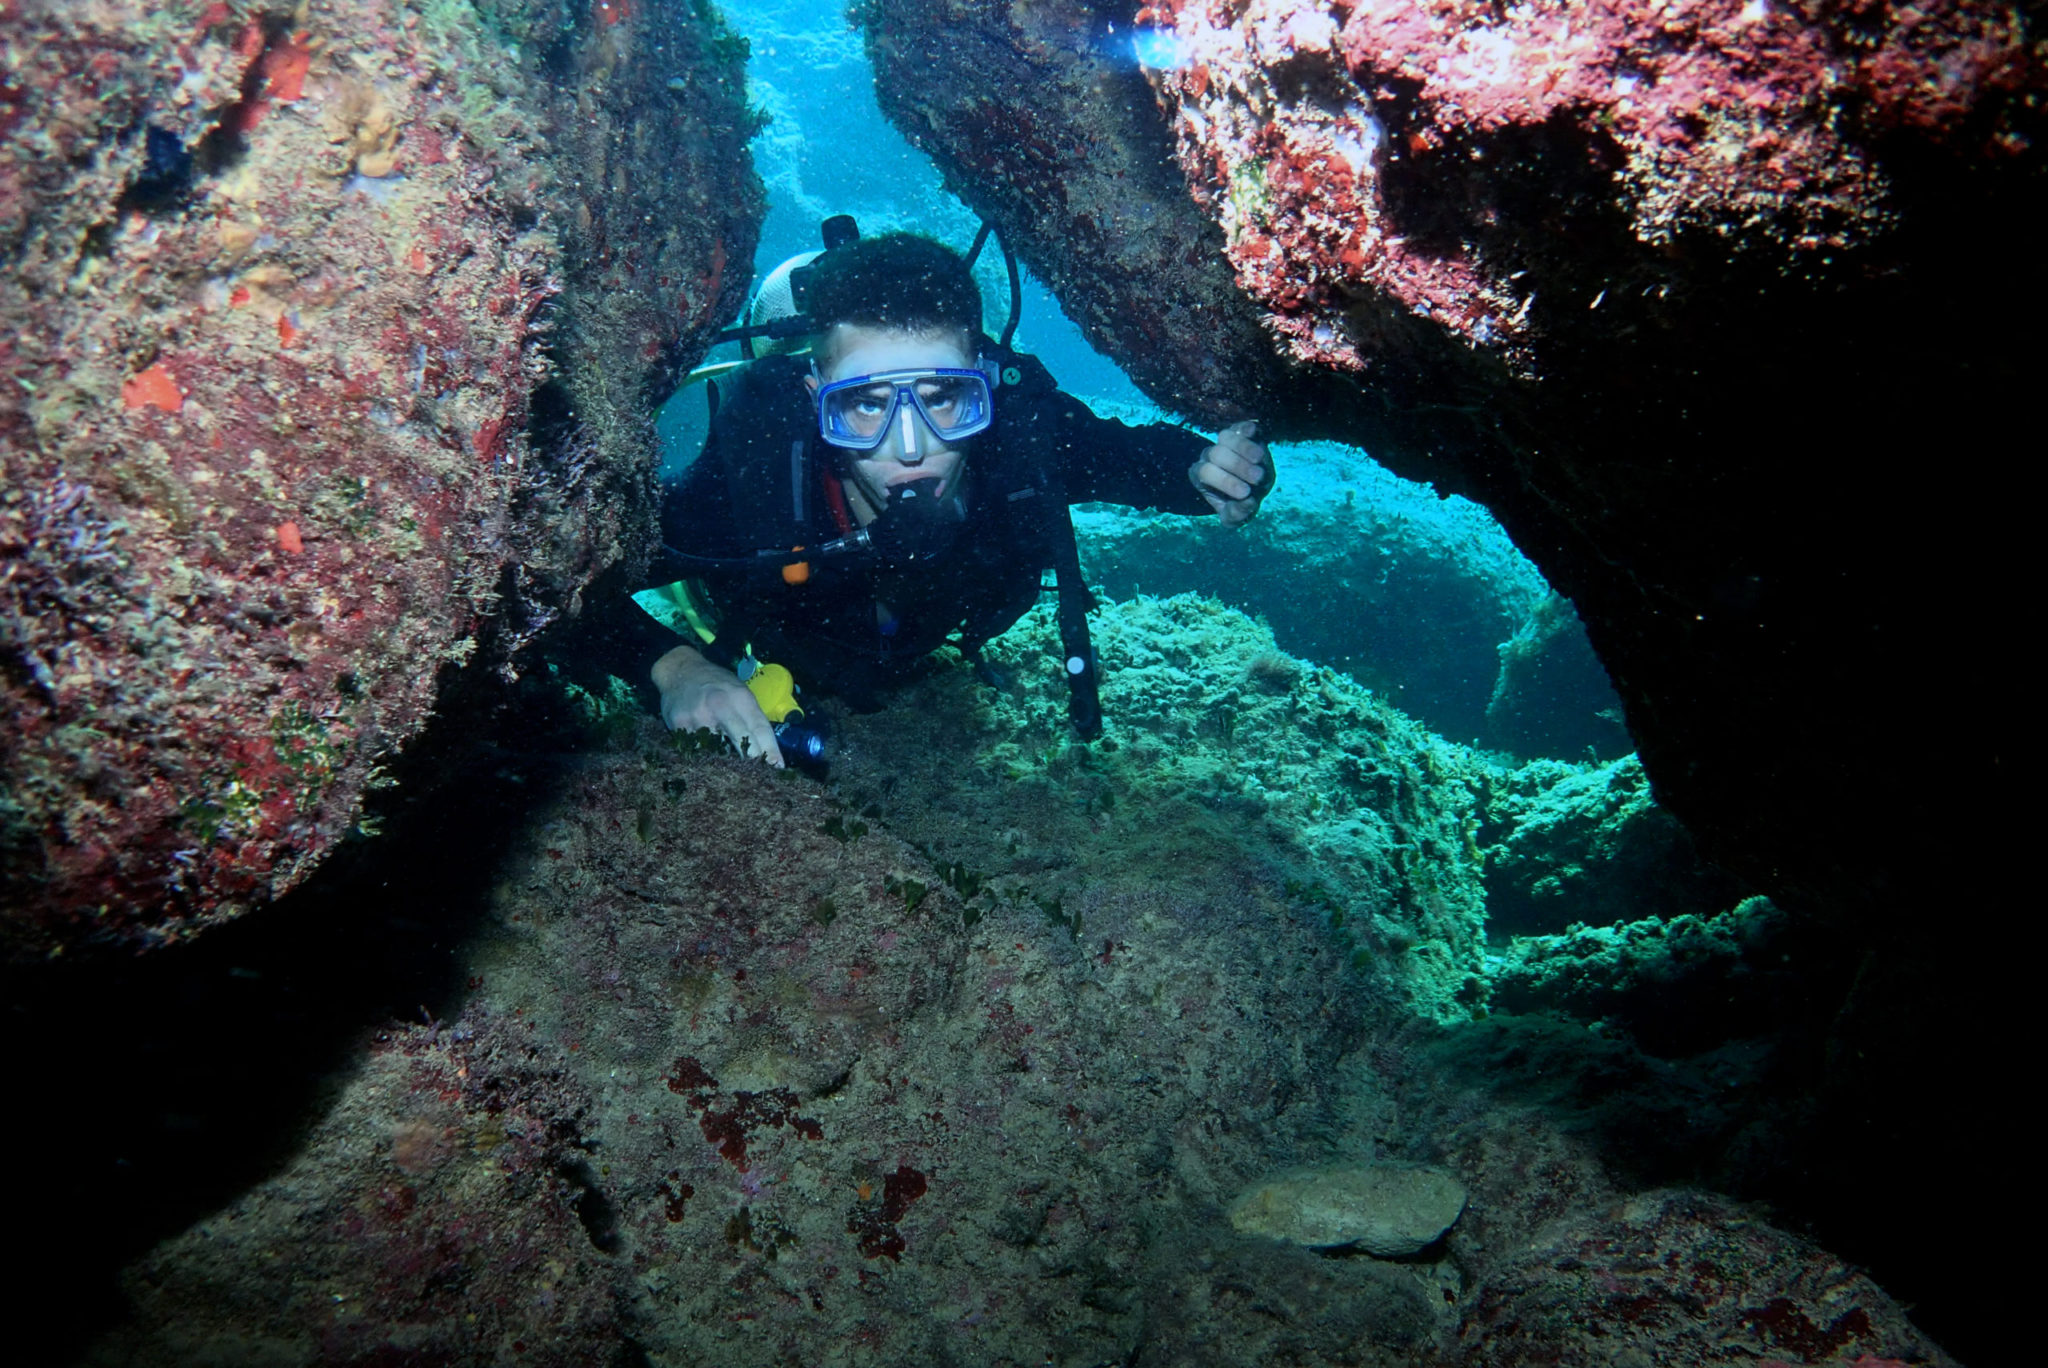 Cyprus Beginner dive course: Discover scuba diving in Paphos